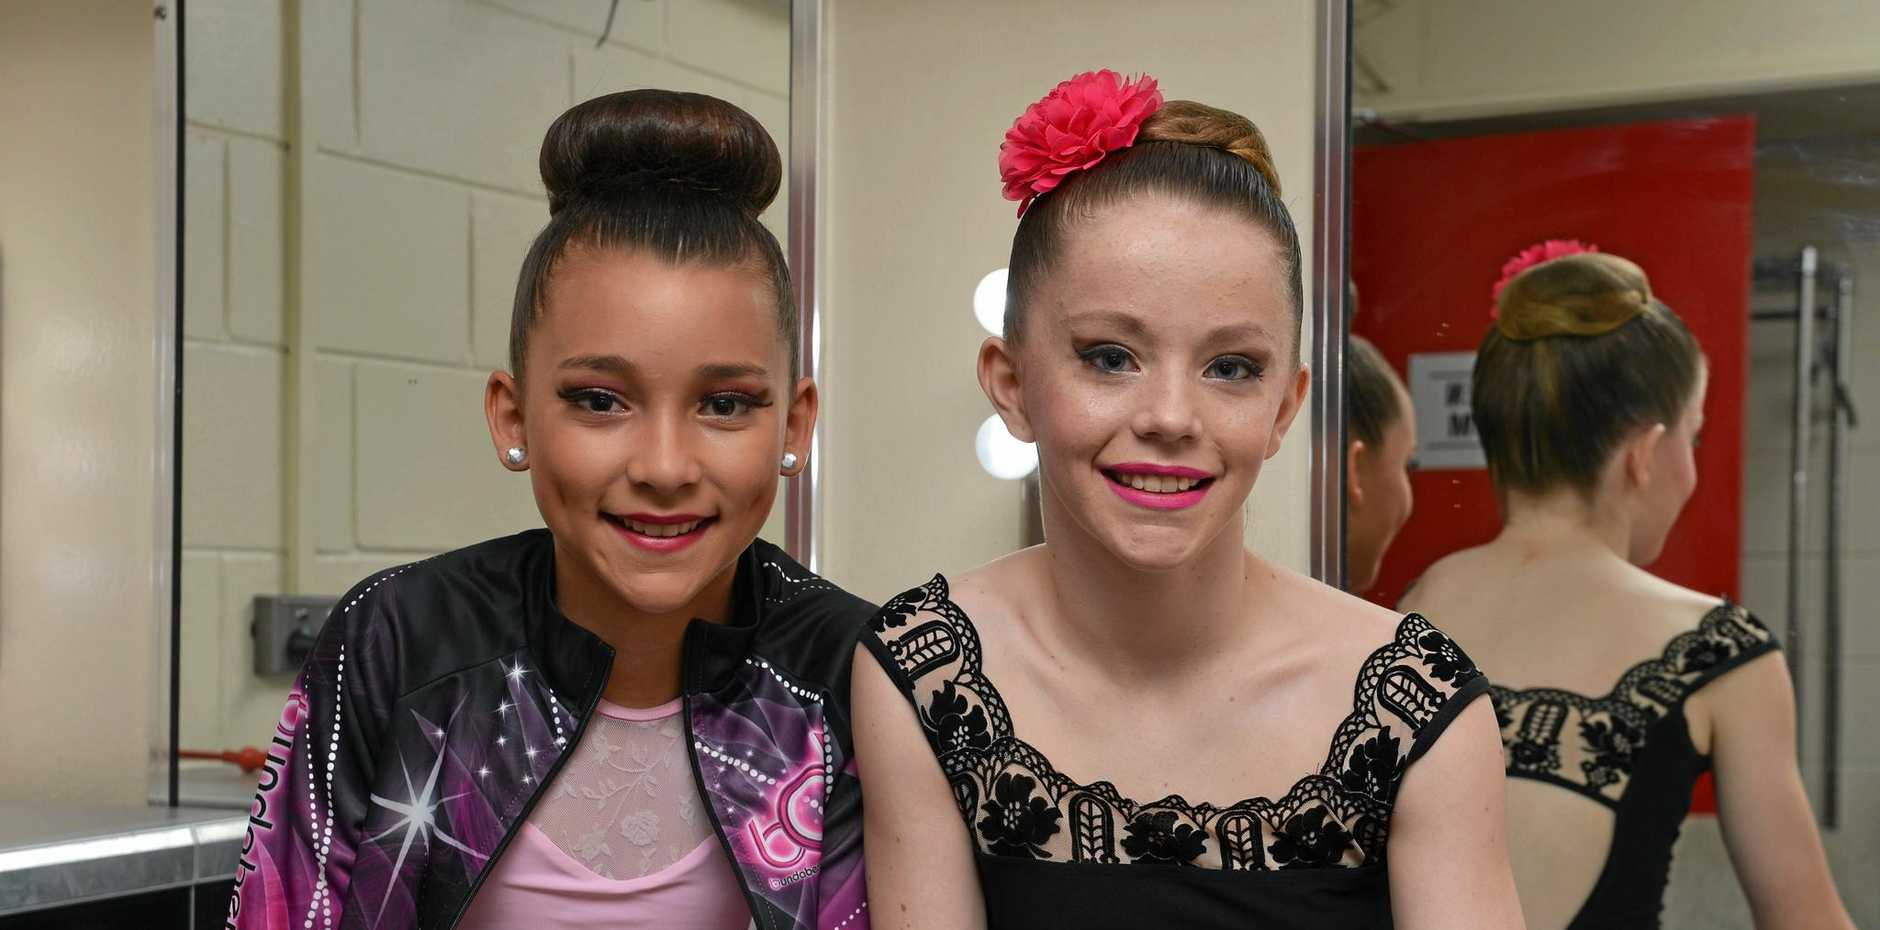 LOCAL GIRLS: Chloe ONeill and Paige ODea waiting for their performance at the Bundaberg festival of Dance at the Moncrief Theatre.